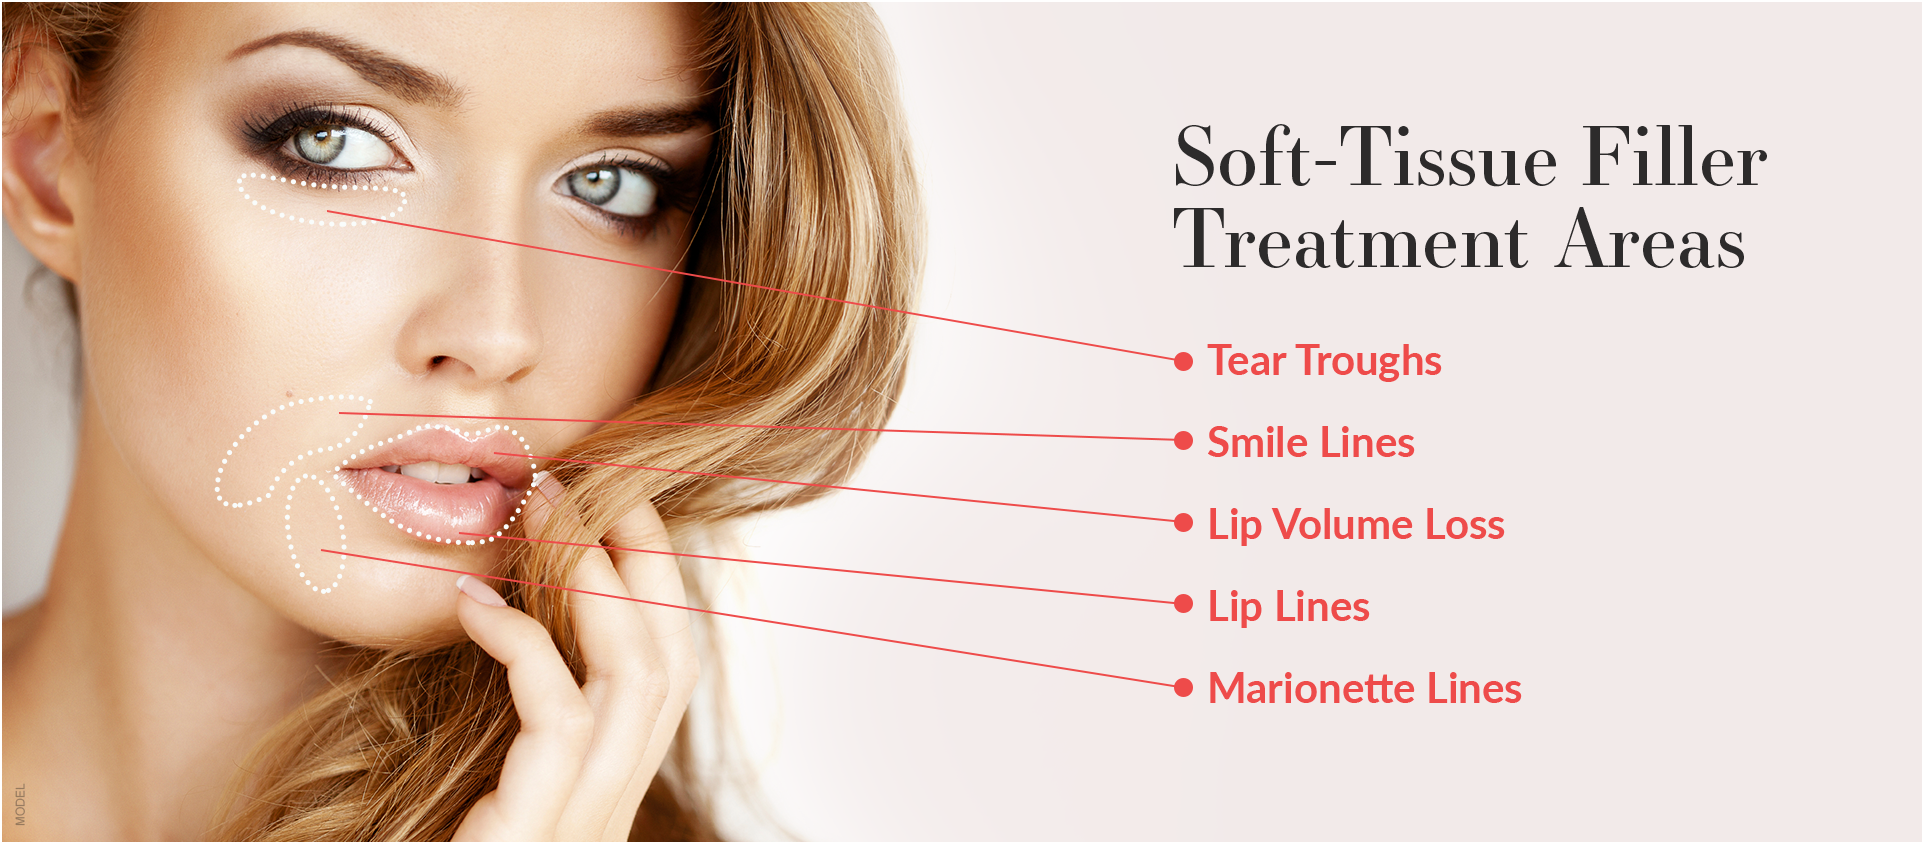 soft-tissue filler treatment areas diagram